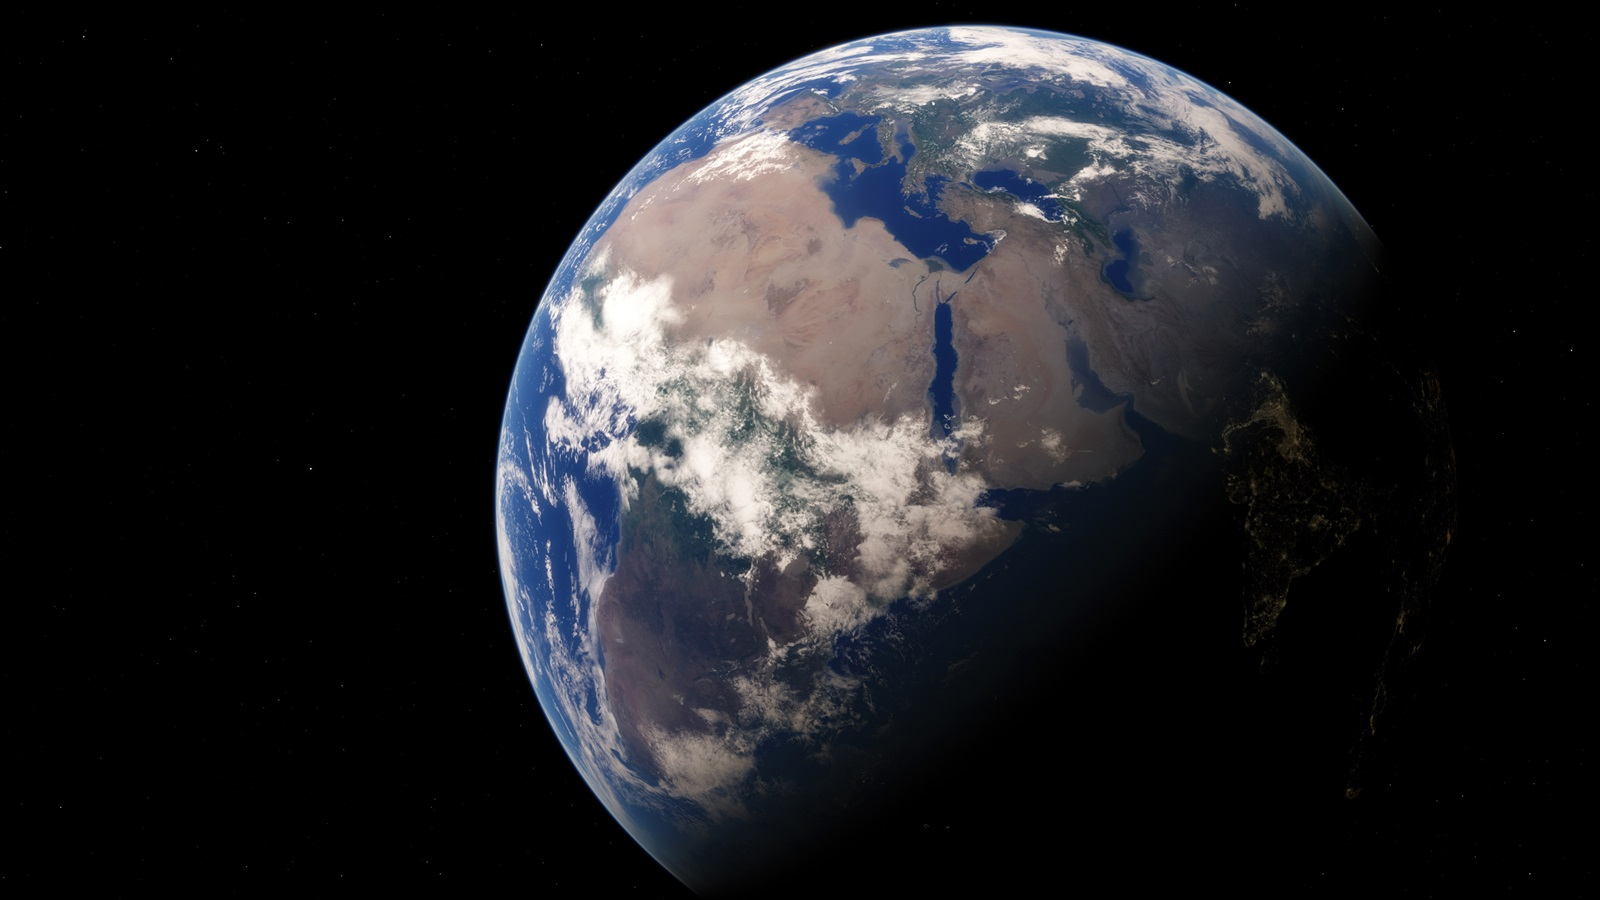 Earth our home planet space black background wallpaper - Space wallpaper 1600x900 ...